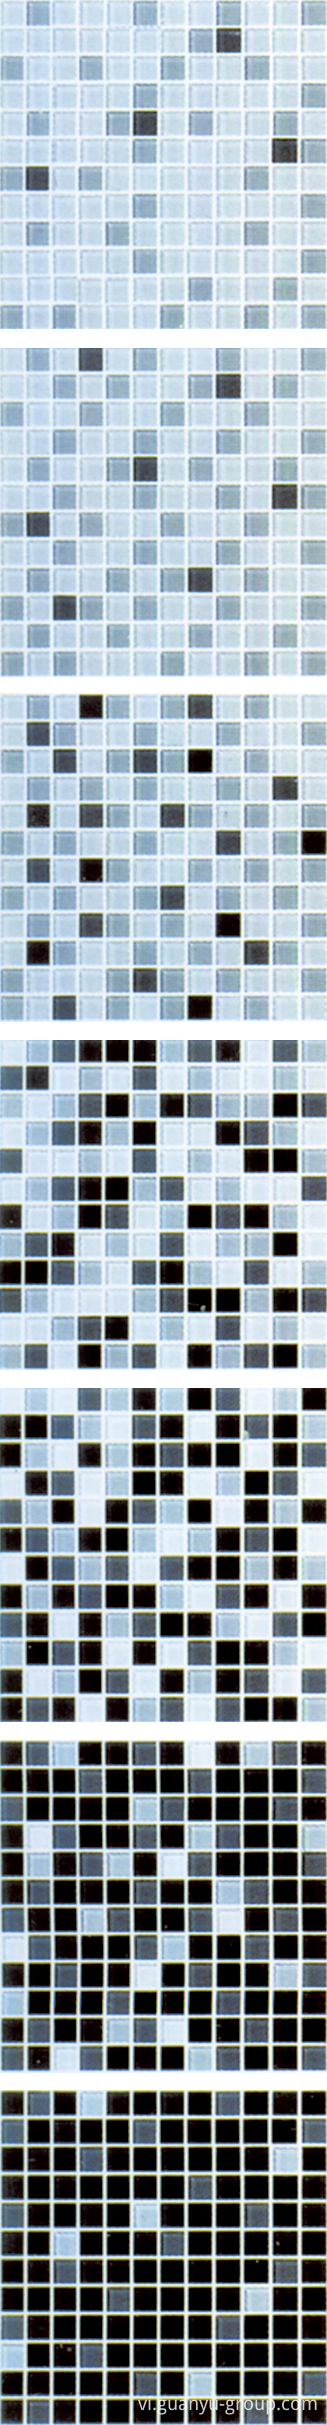 Black Gradual Change Glass Mosaic